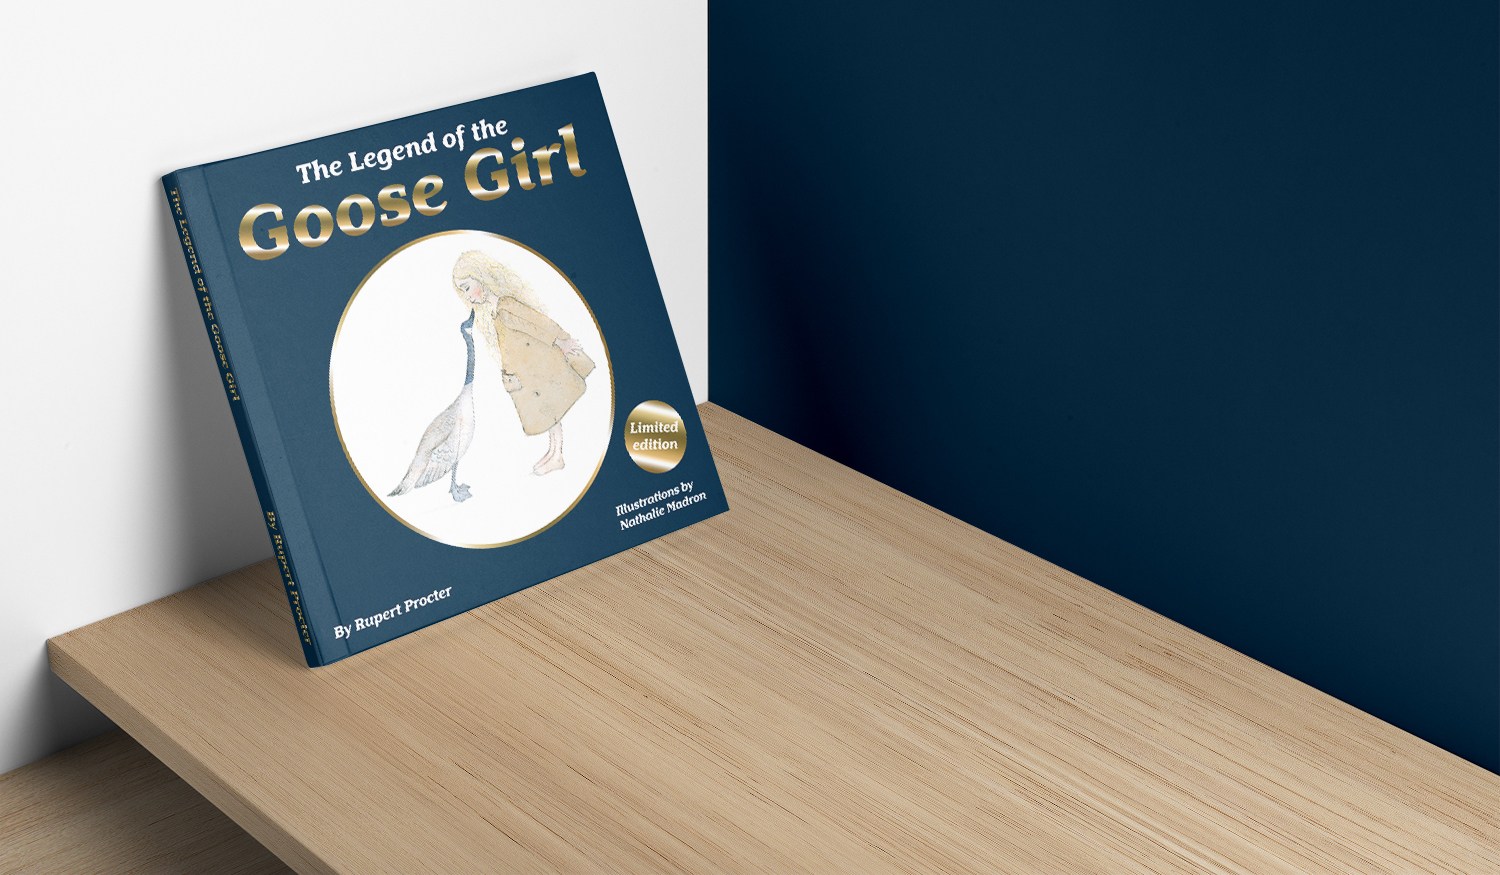 The Legend of the Goose Girl - Book design by Arnott Design